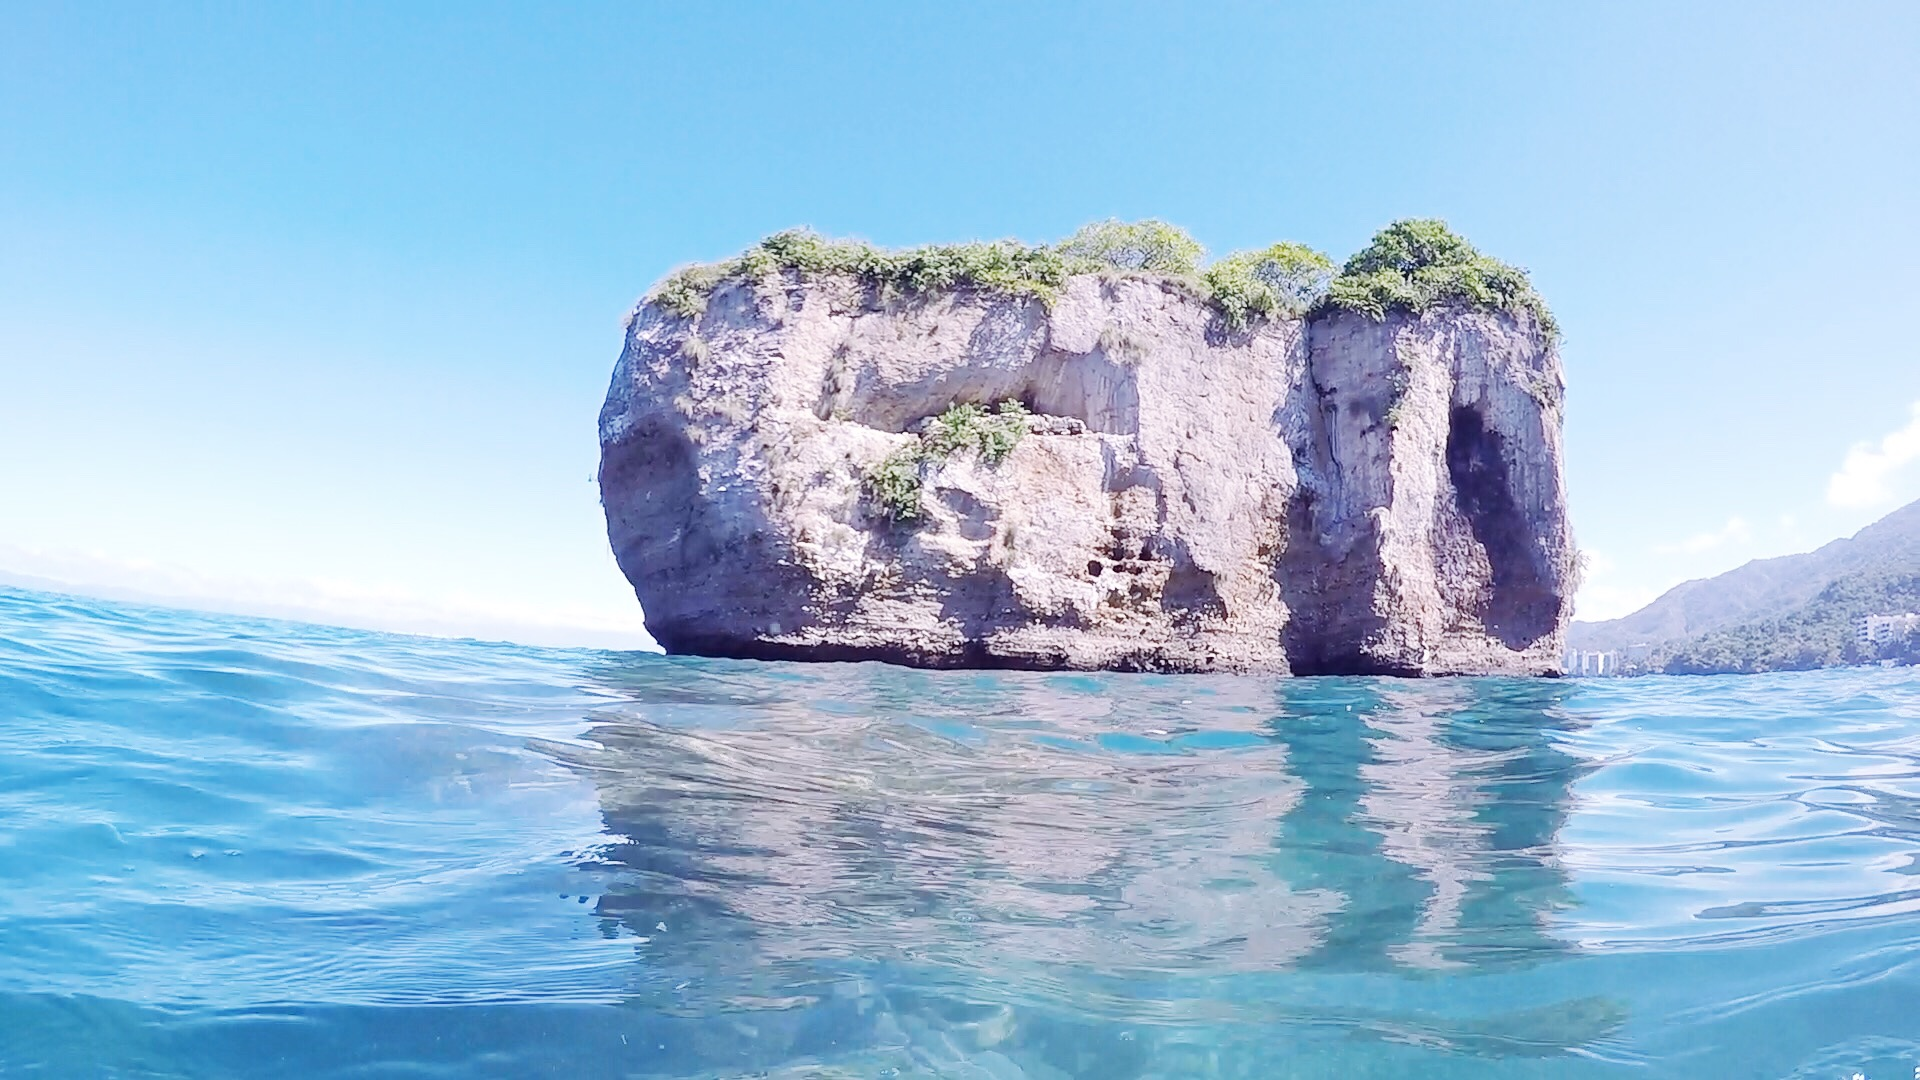 View of one of the islands of Los Arcos from the water.